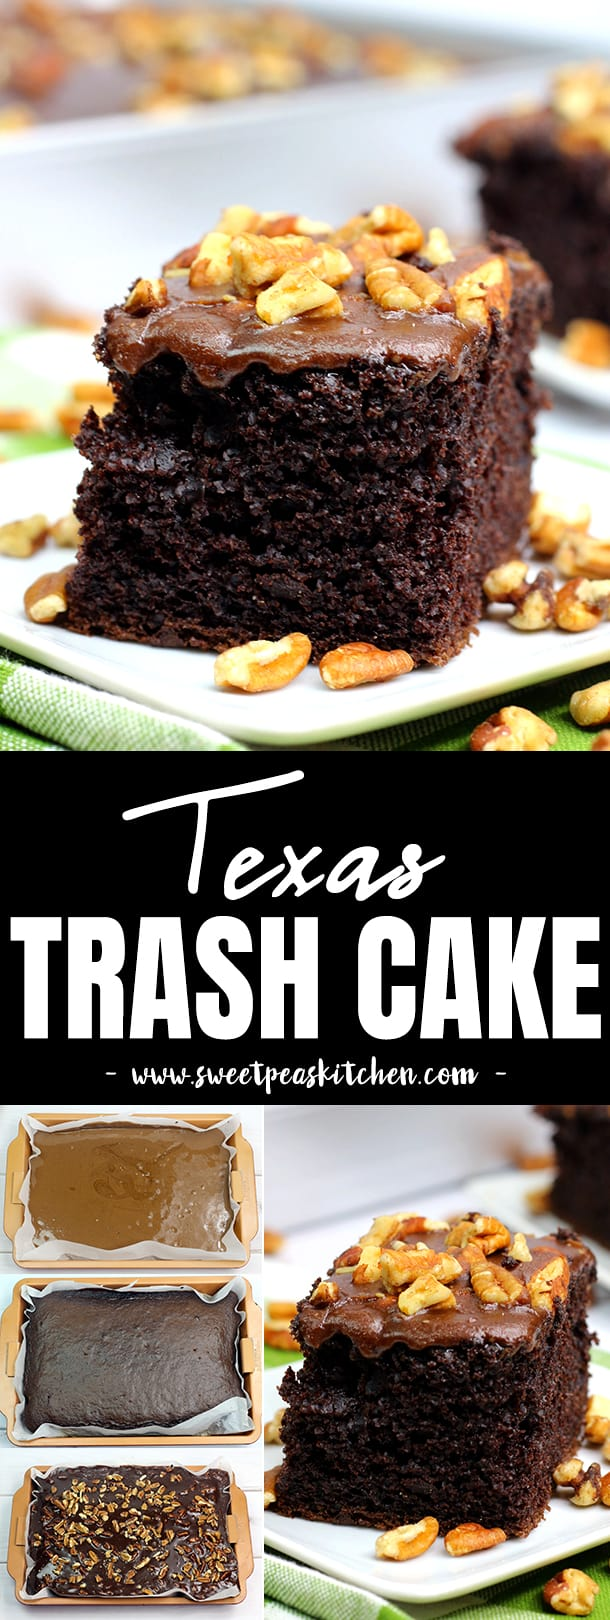 Texas Trash Buttermilk Chocolate Cake Recipe with Pecans